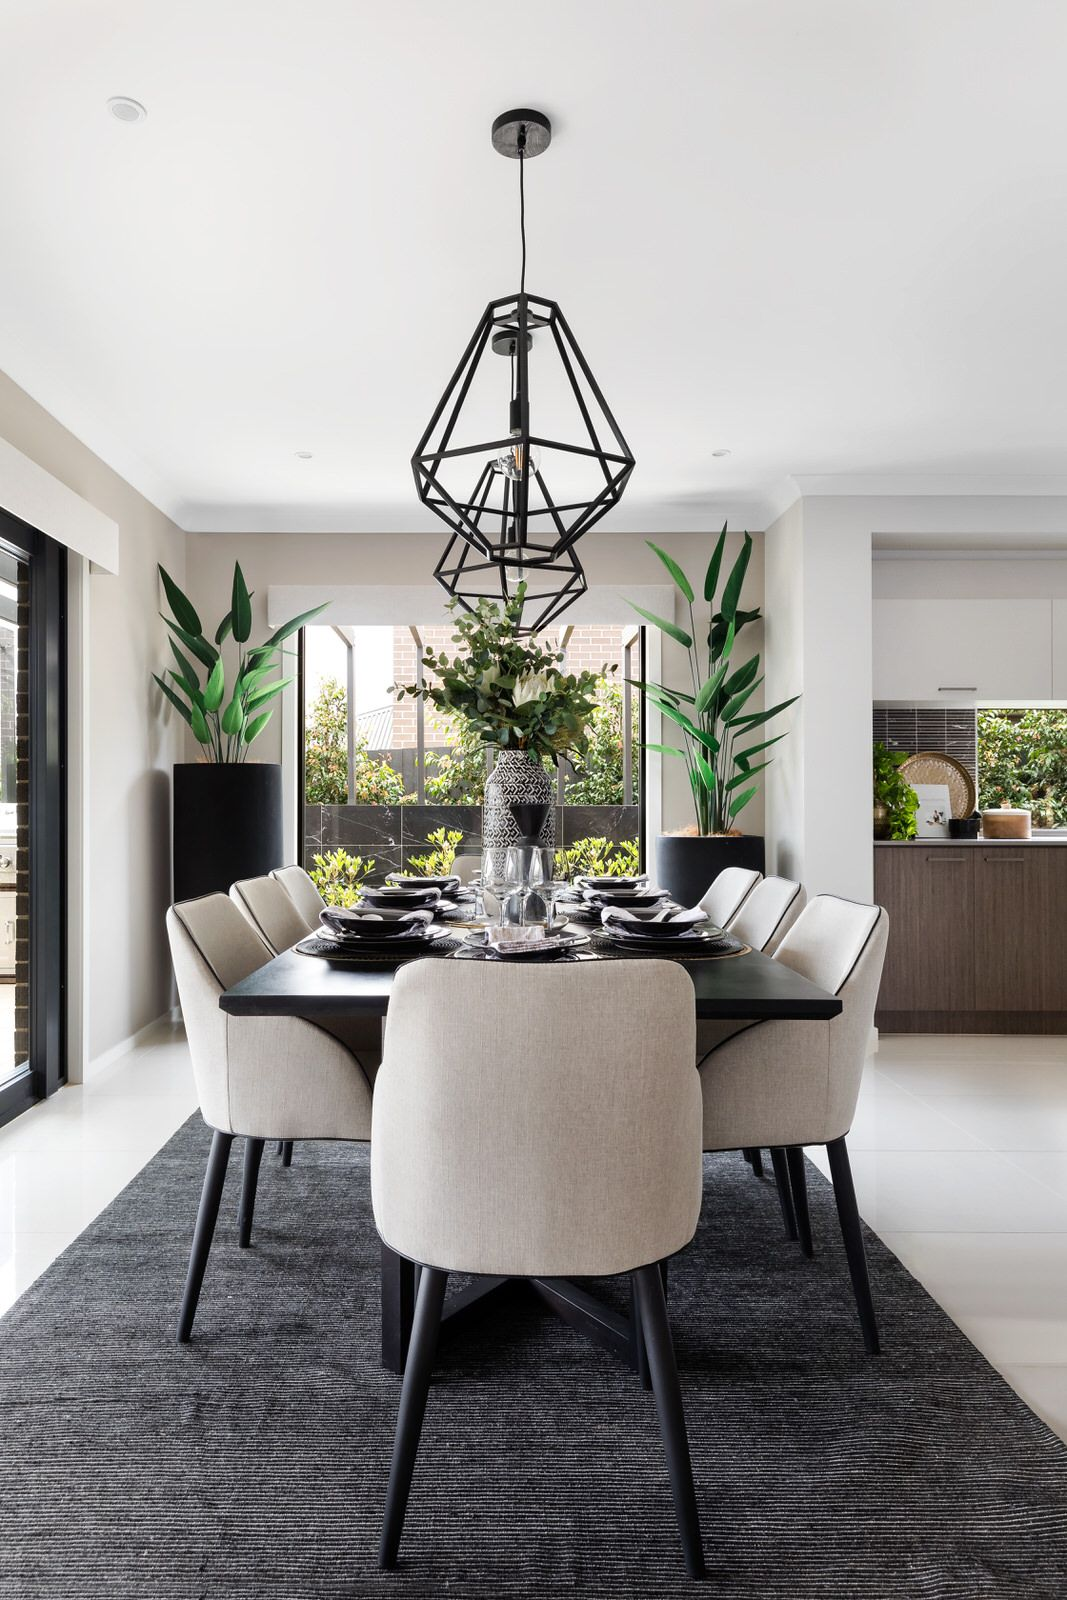 Strike The Ideal Balance By Pairing Contemporary Sleek Furniture And Handmade Accessories To Crea With Images Stylish Dining Room Luxe Dining Room Dining Room Table Decor